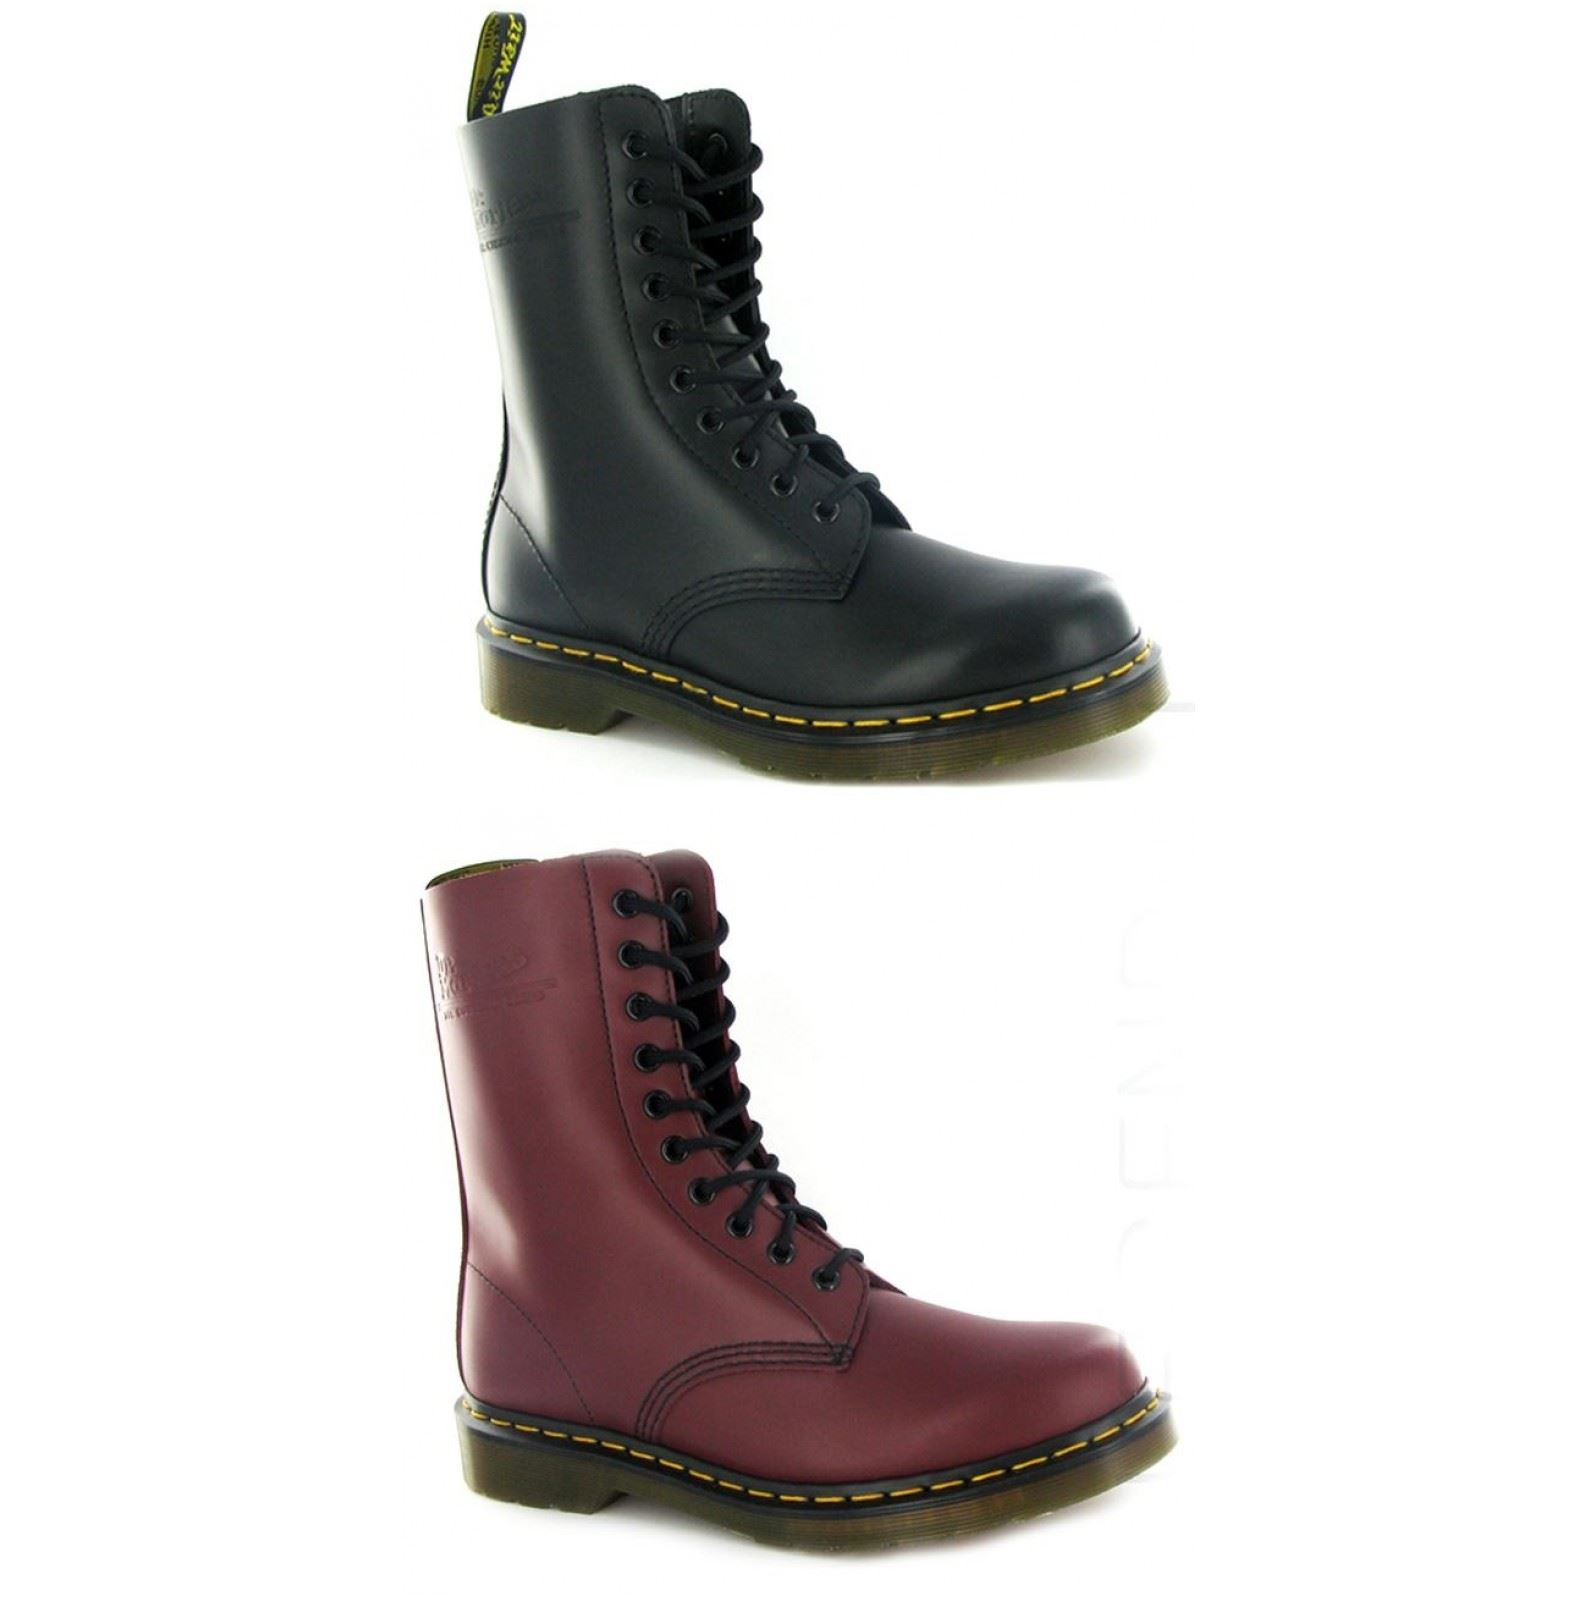 Details about Dr.Martens 1490Z 10 Eyelets Leather Womens Boots da21a9bdcc